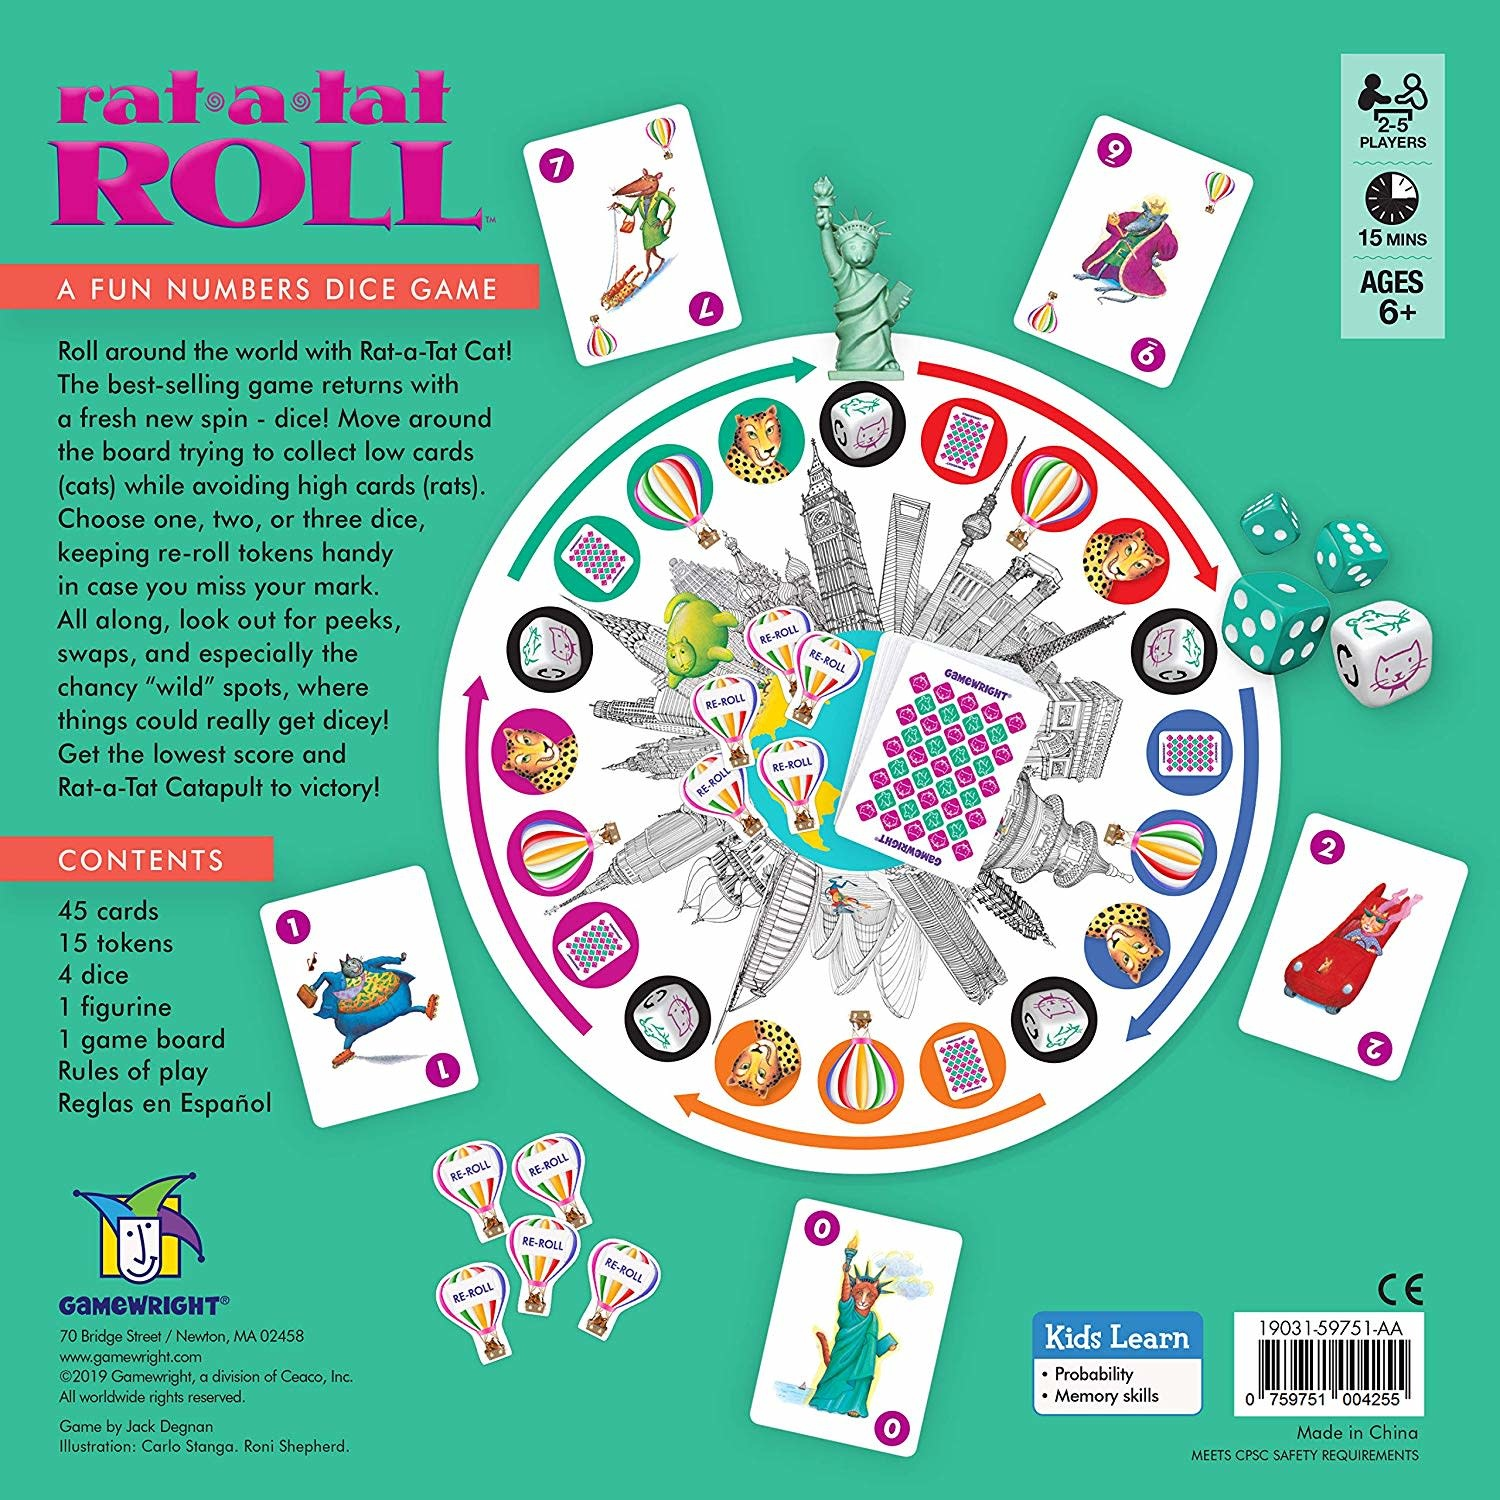 Rat-a-tat Roll by Gamewright